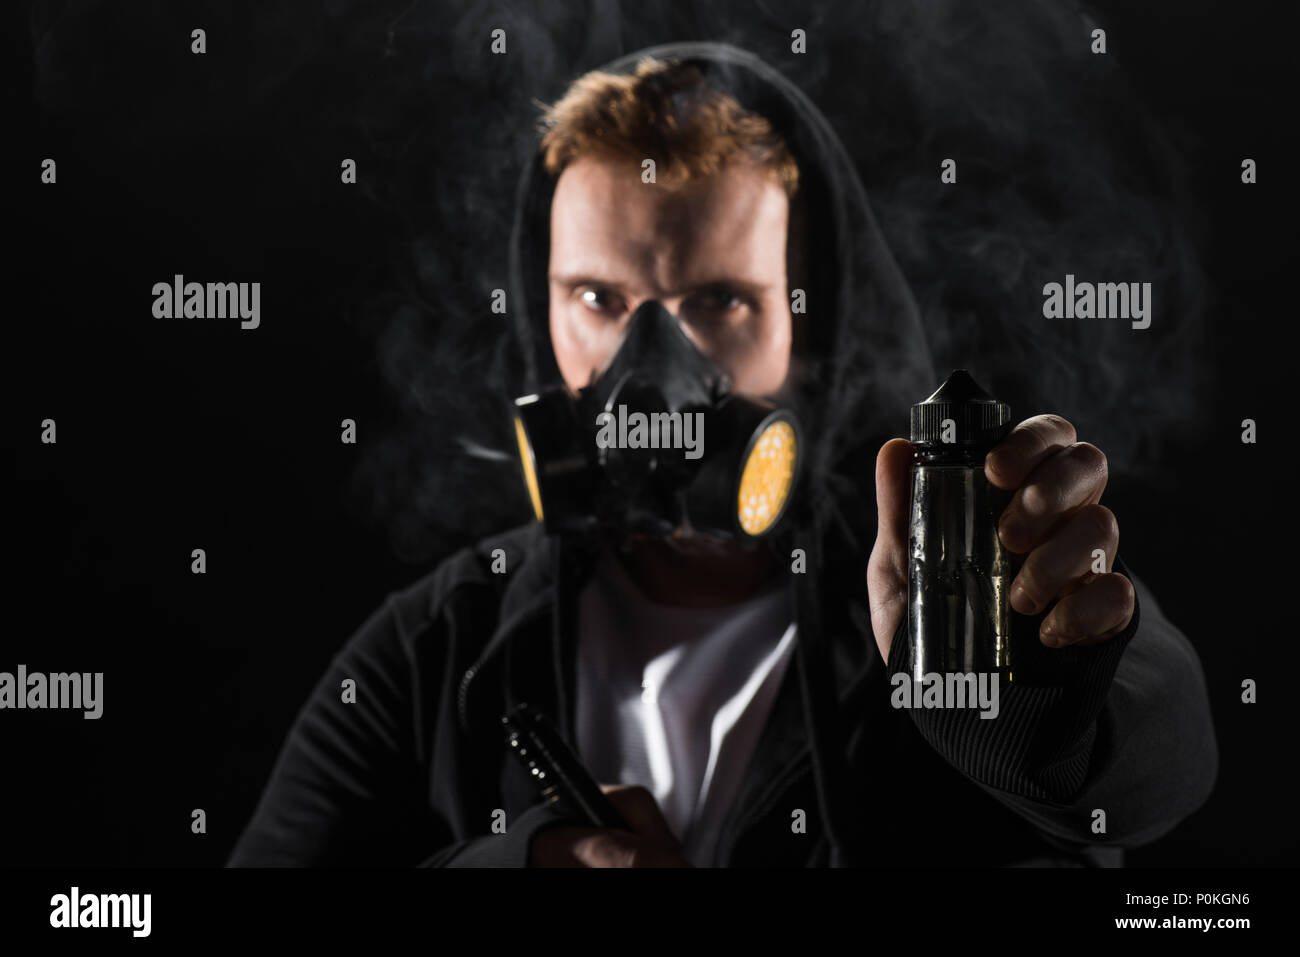 Man wearing protective filter mask smoking electronic cigarette showing E-liquid - Stock Image